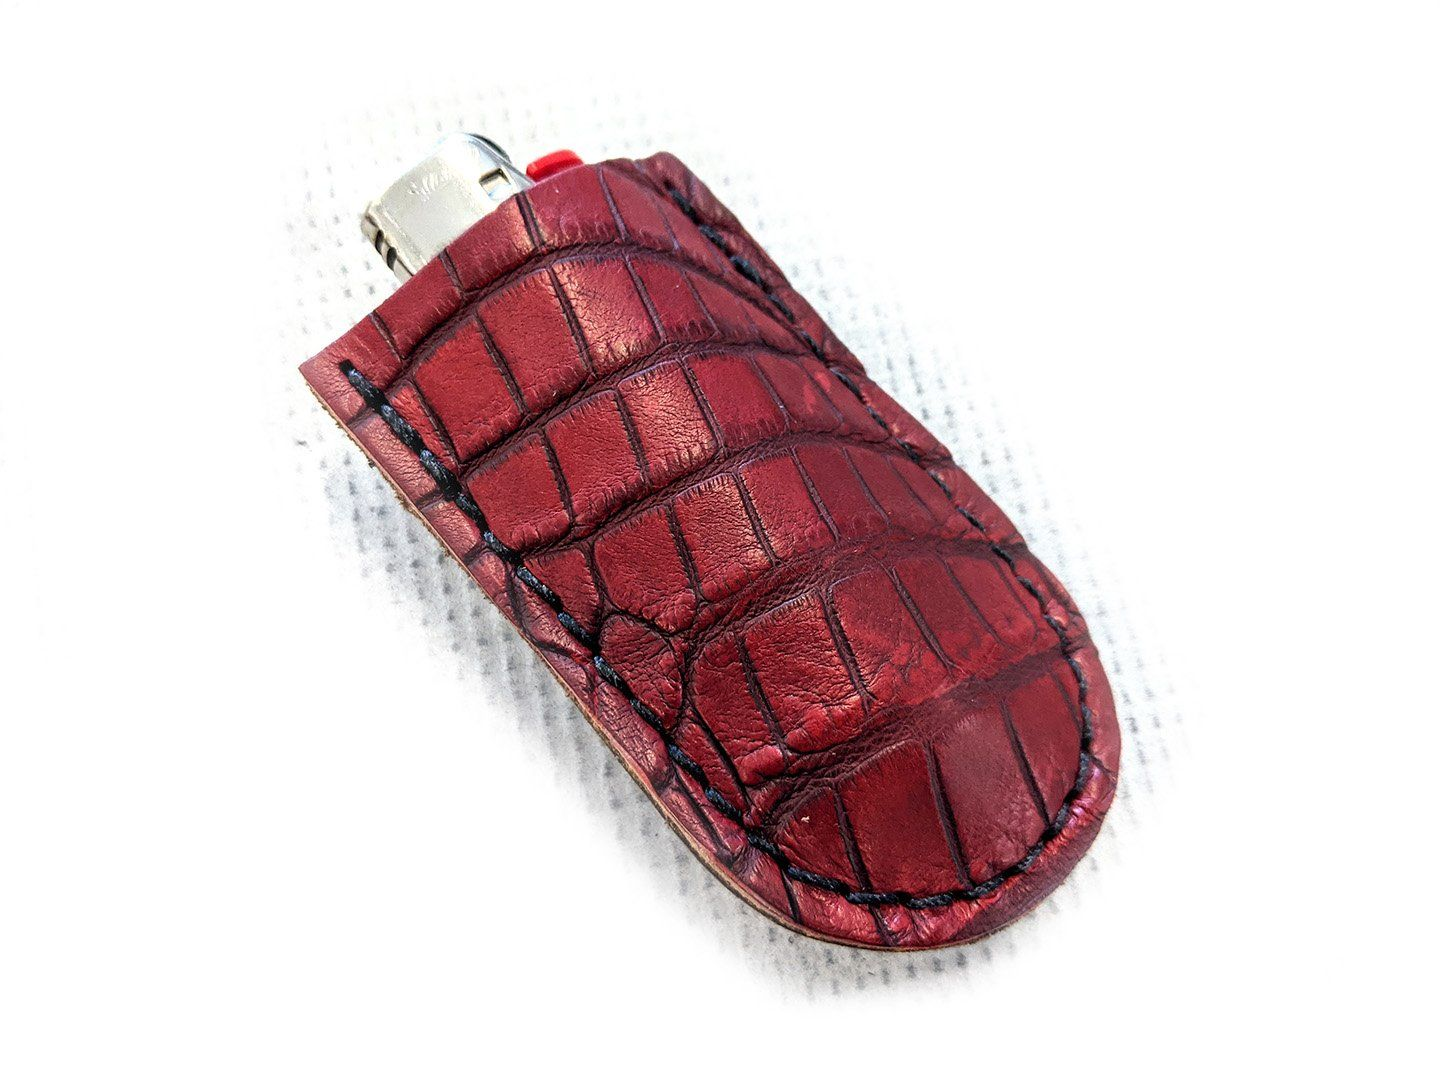 Limited Run Bic Lighter with Leather Case - Dragon's Blood Red Alligator